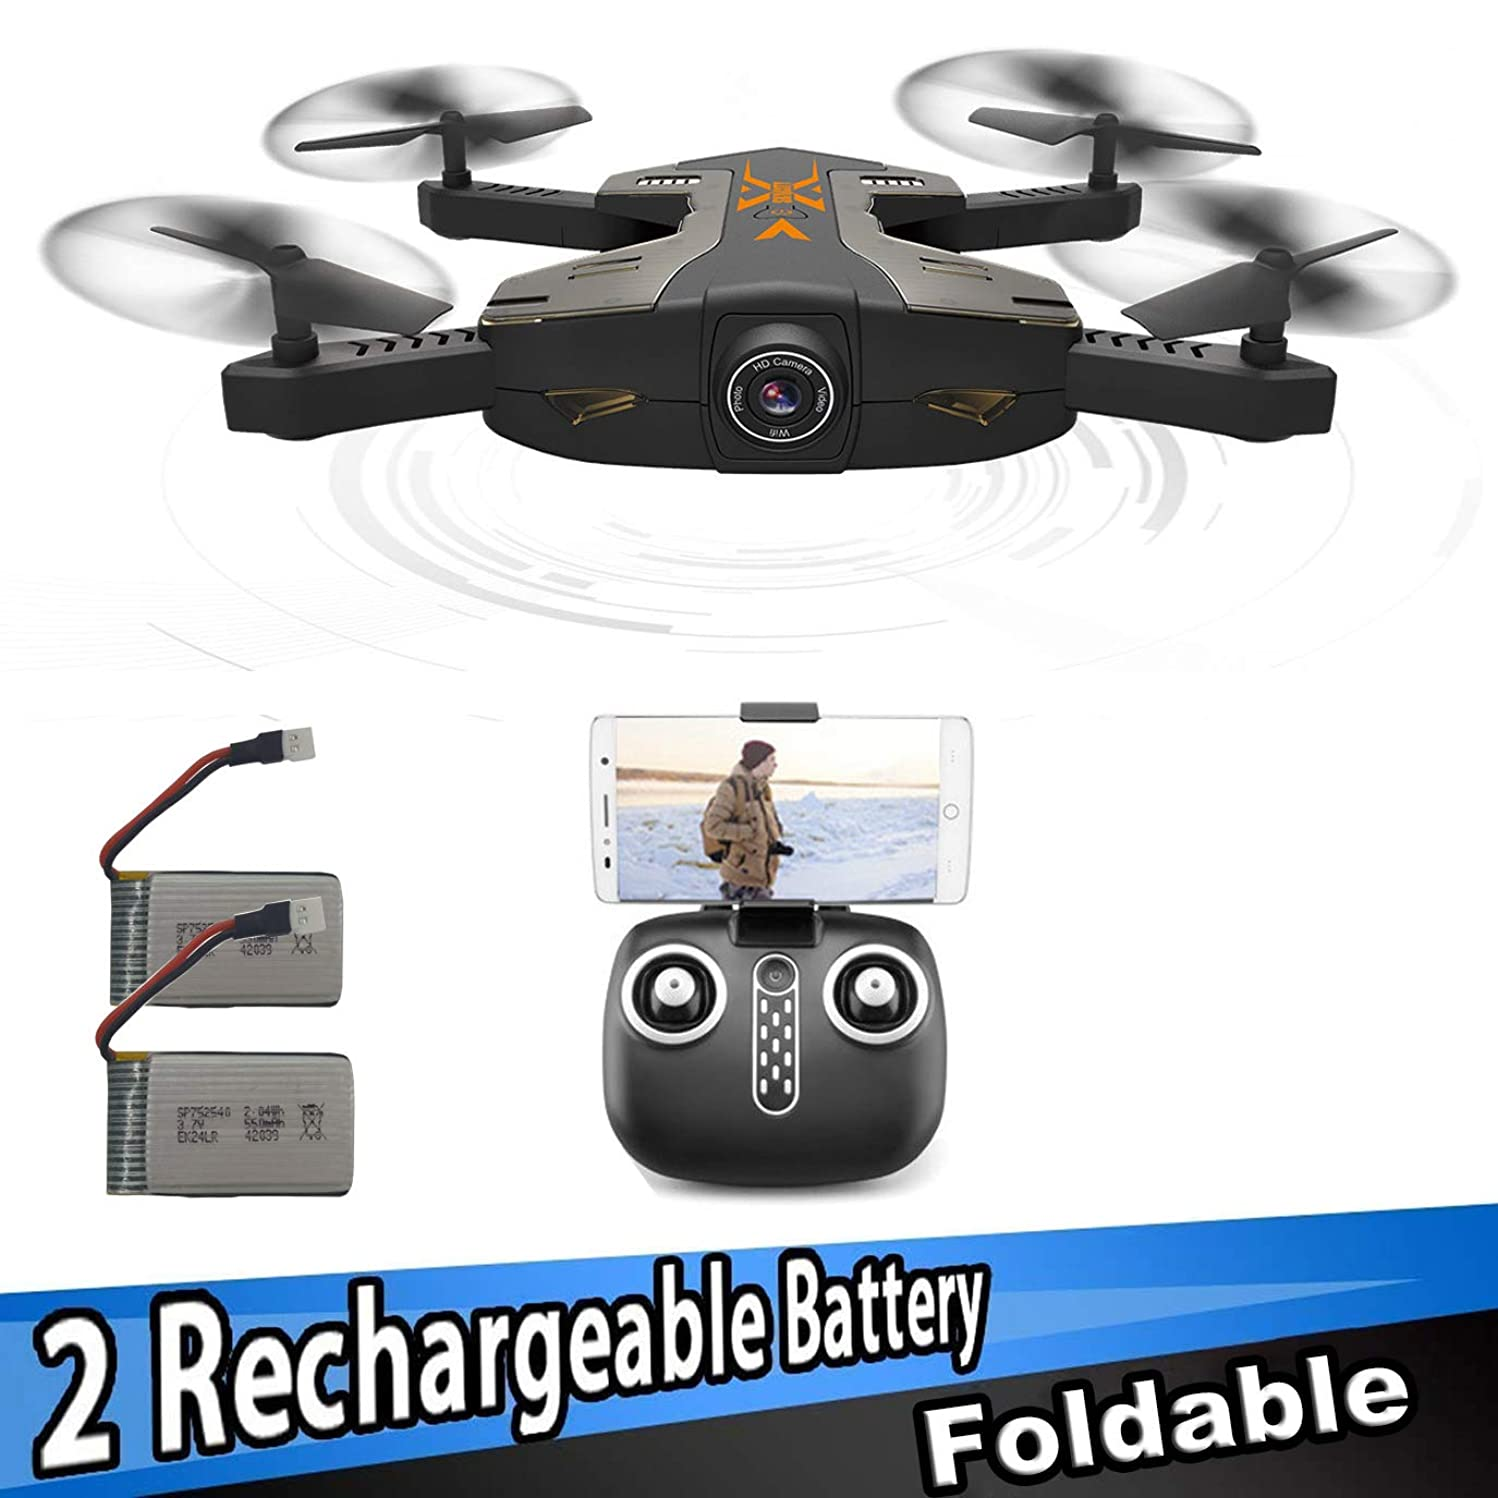 SZJJX FPV RC Drones Foldable Remote Control Quadcopter with 720P HD Wide-Angle WiFi Camera 2.4Ghz 6-Axis Gyro 4CH VR Helicopter Rtf with Altitude Hold & One Key Return